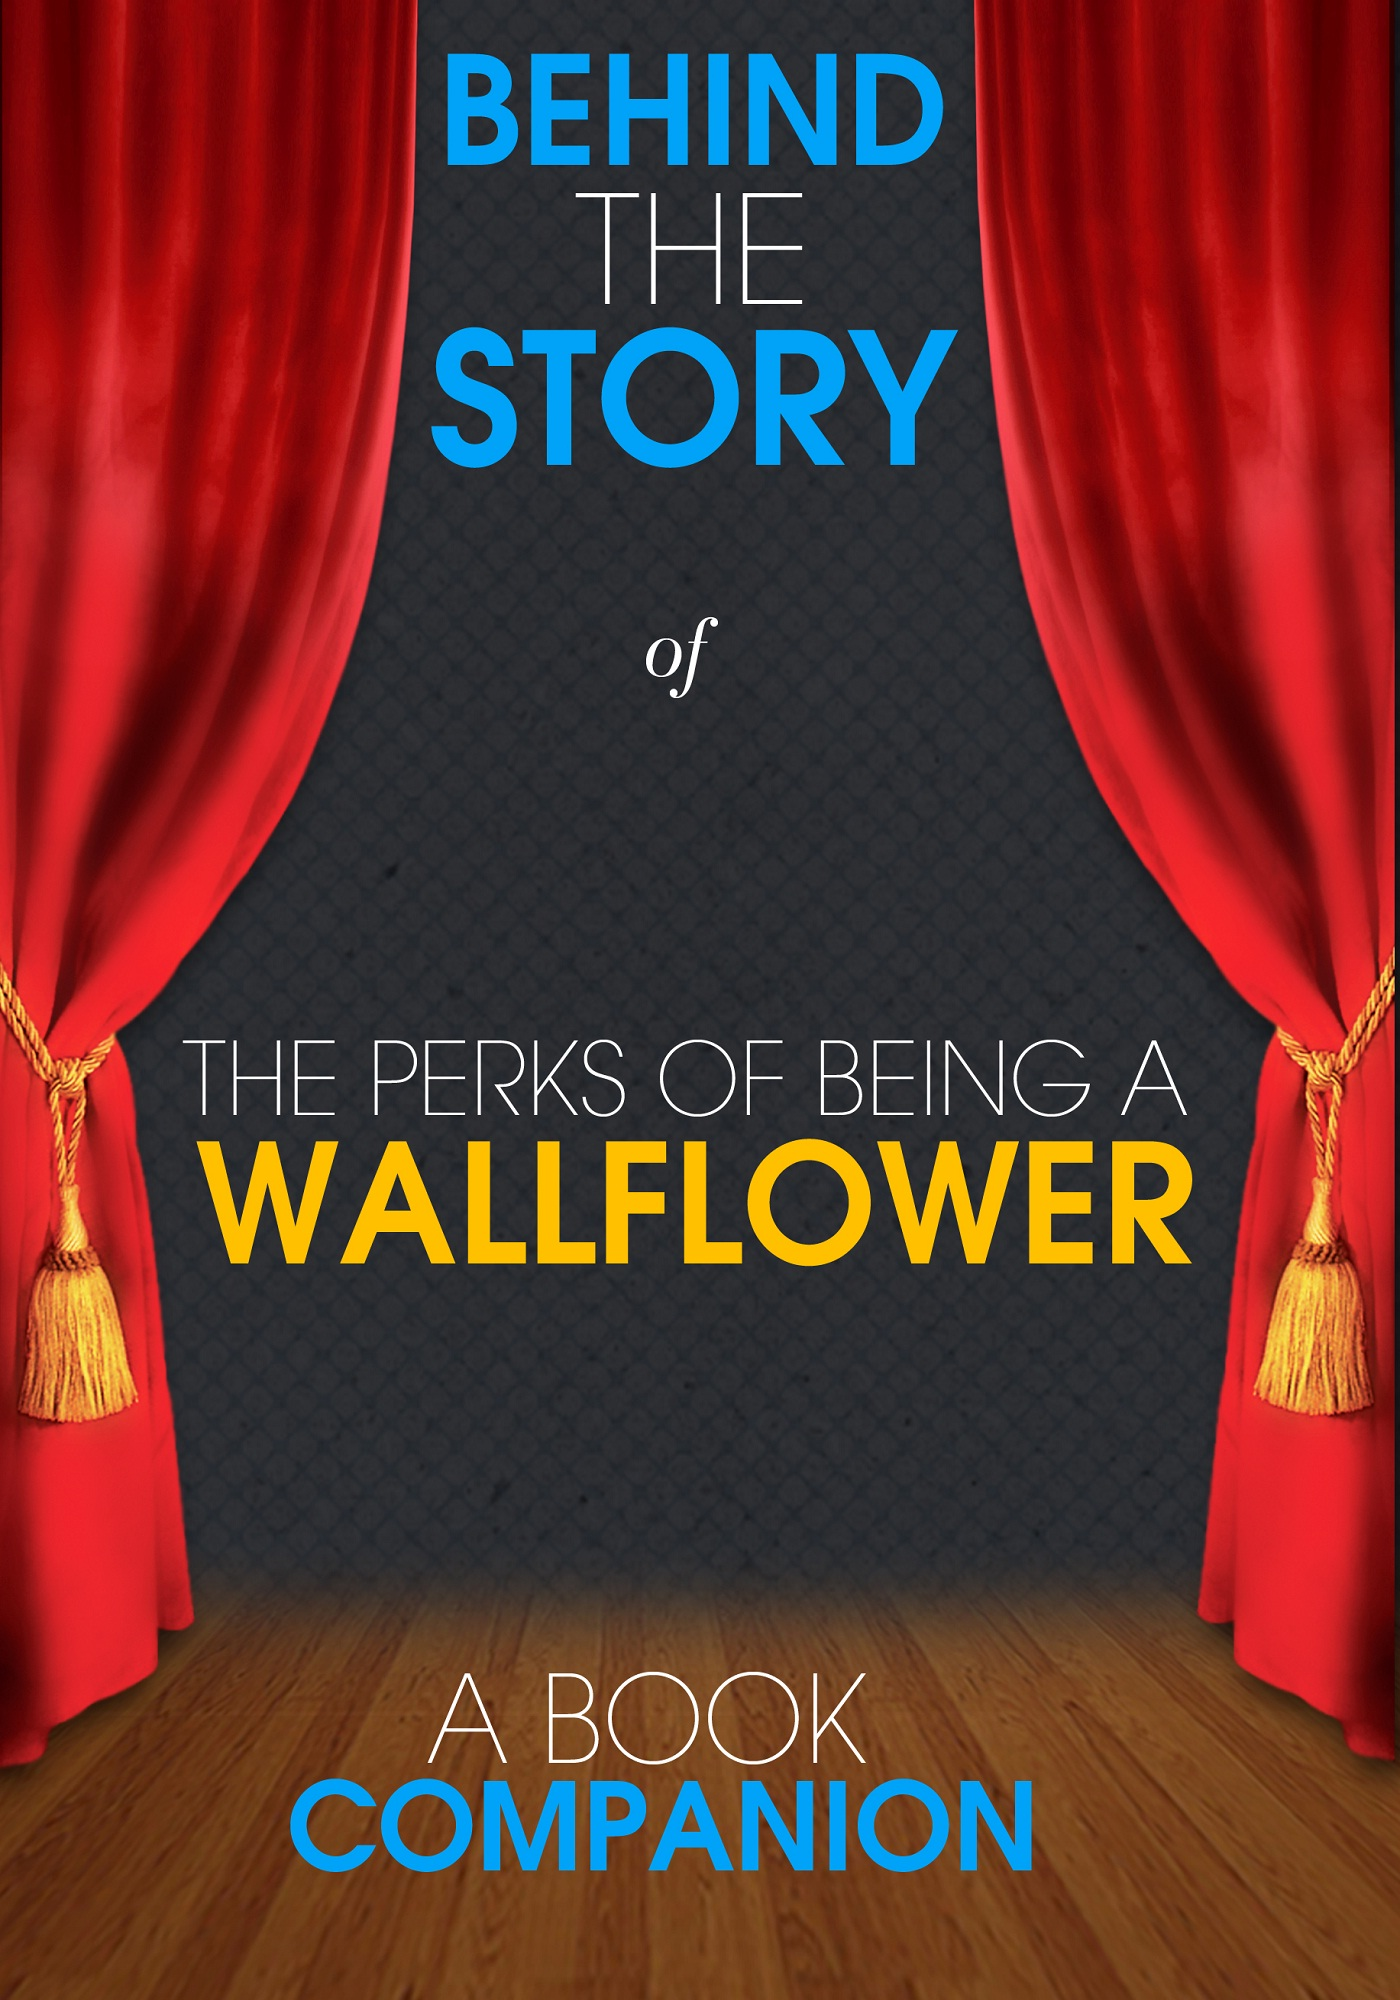 Behind the Story™ Books - The Perks of Being a Wallflower - Behind the Story (A Book Companion)